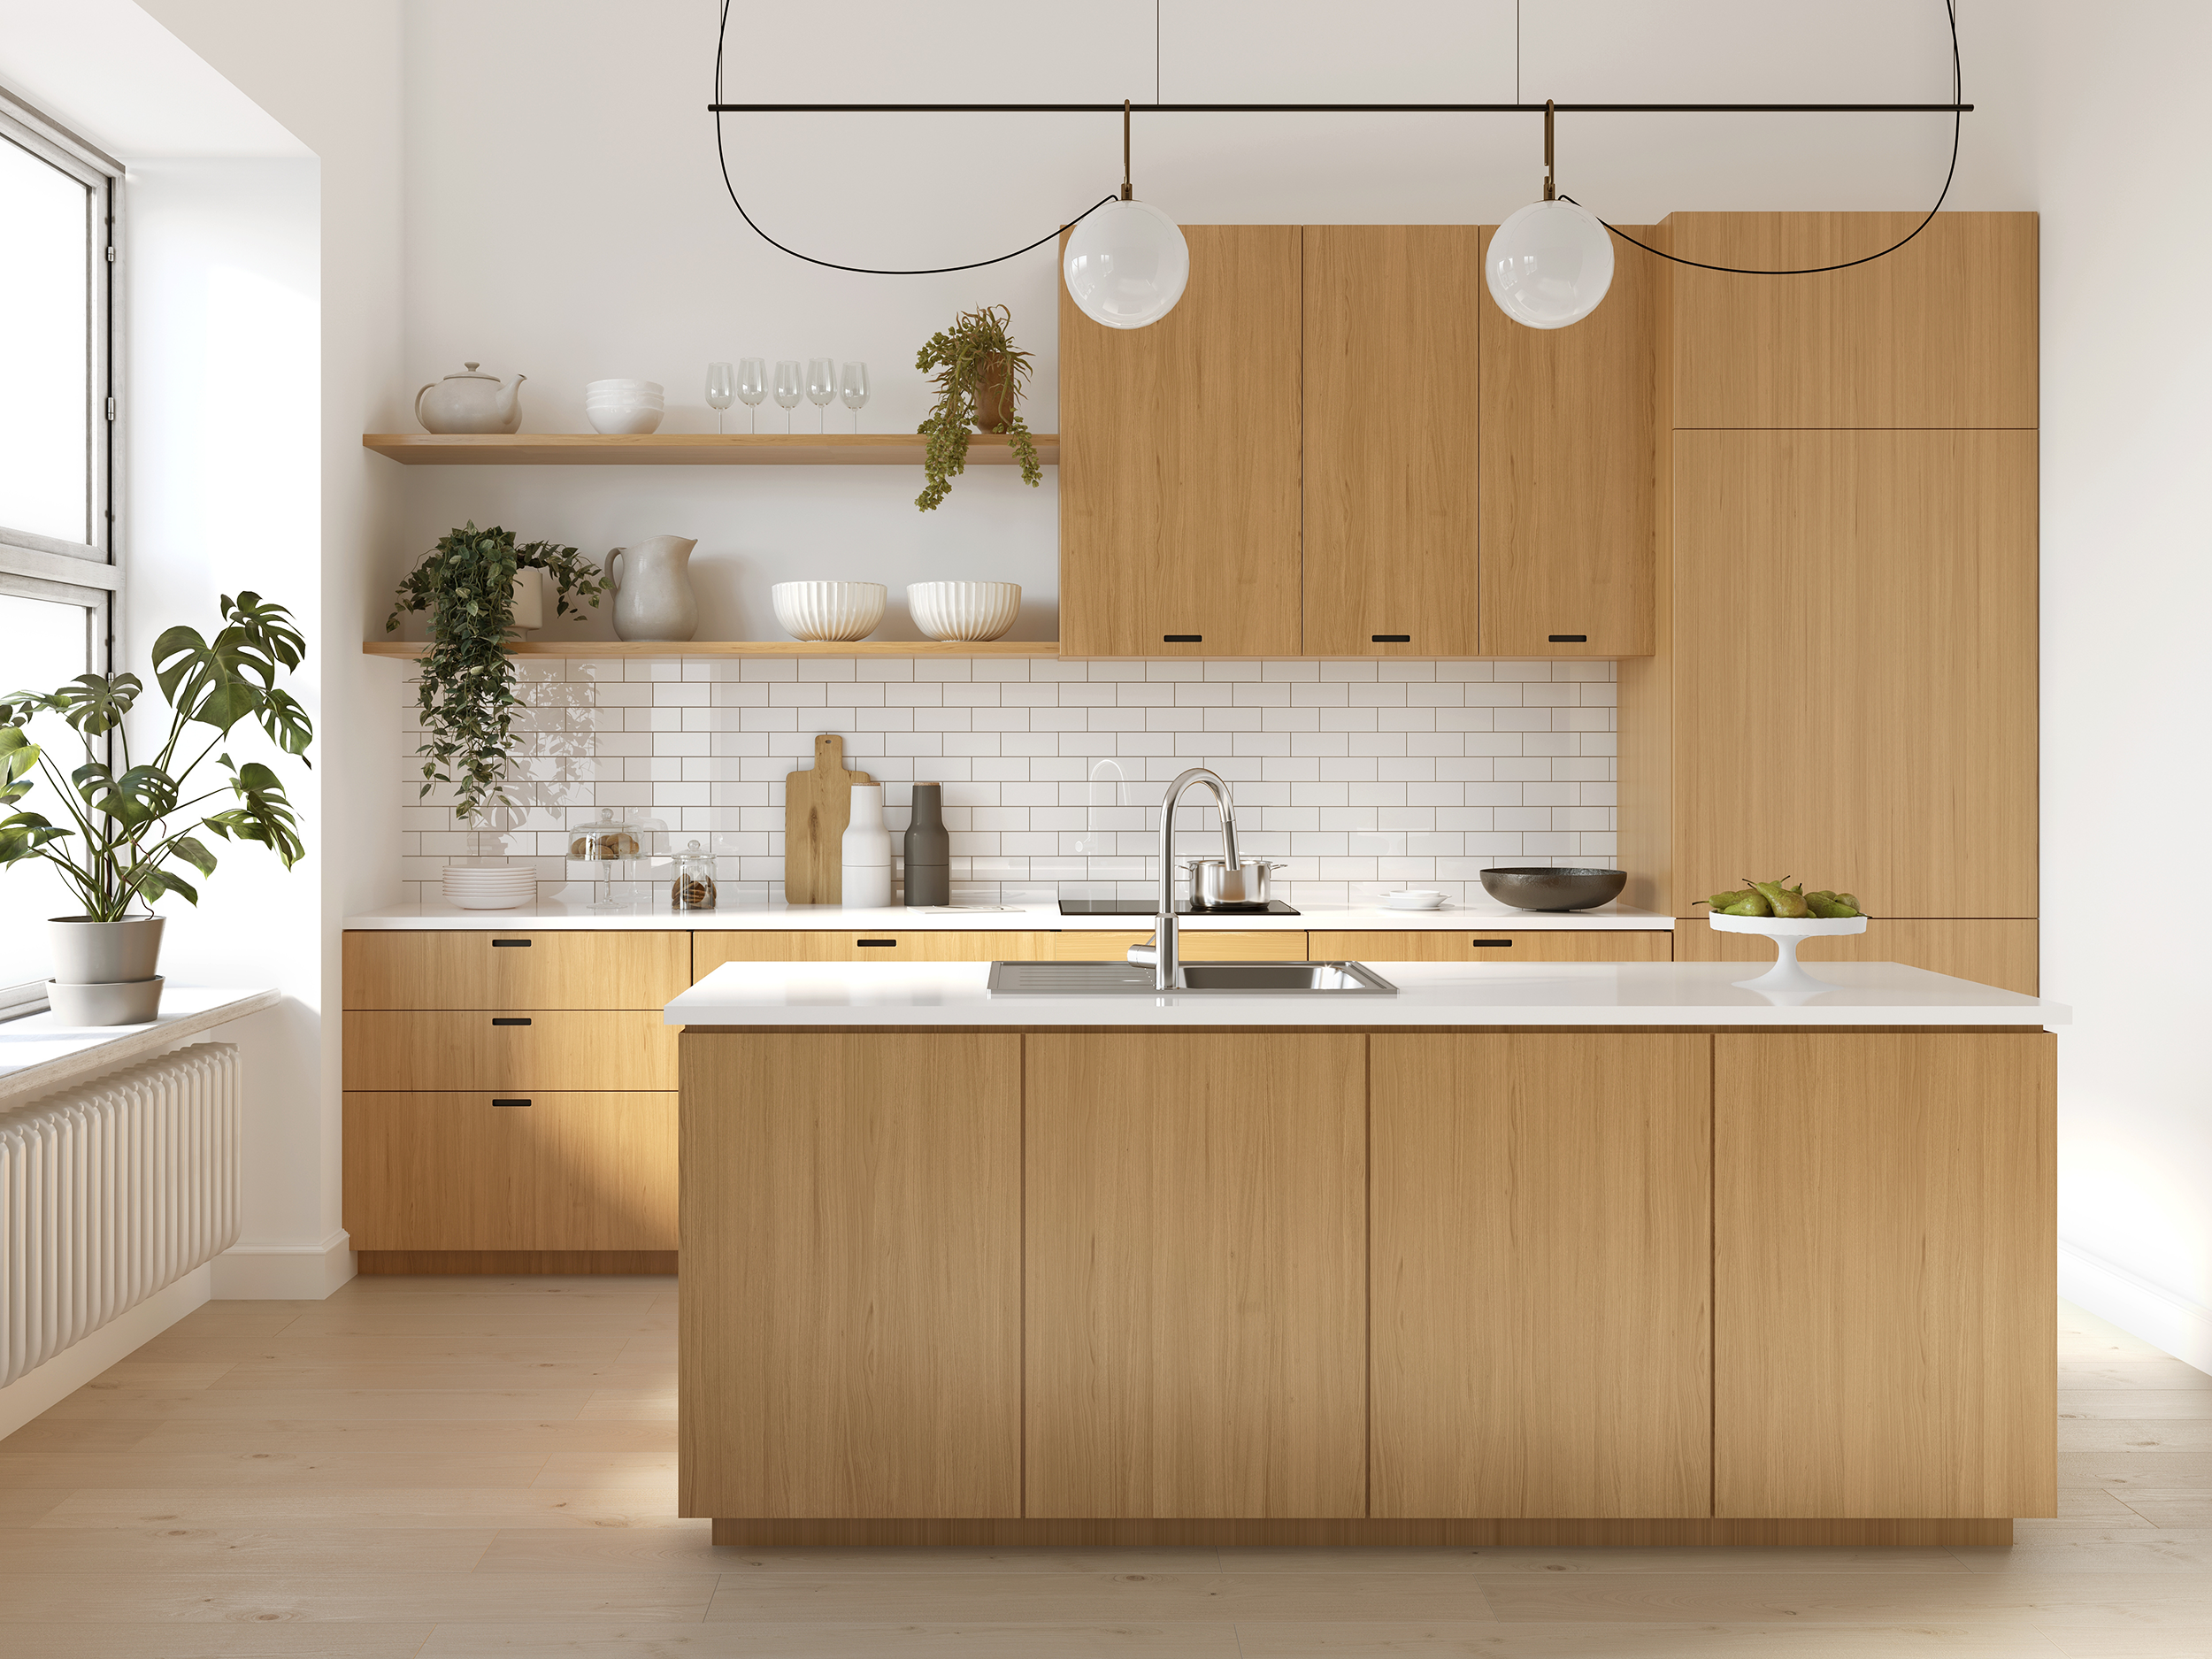 Renovating Your Kitchen in Vancouver   Oasis Kitchens